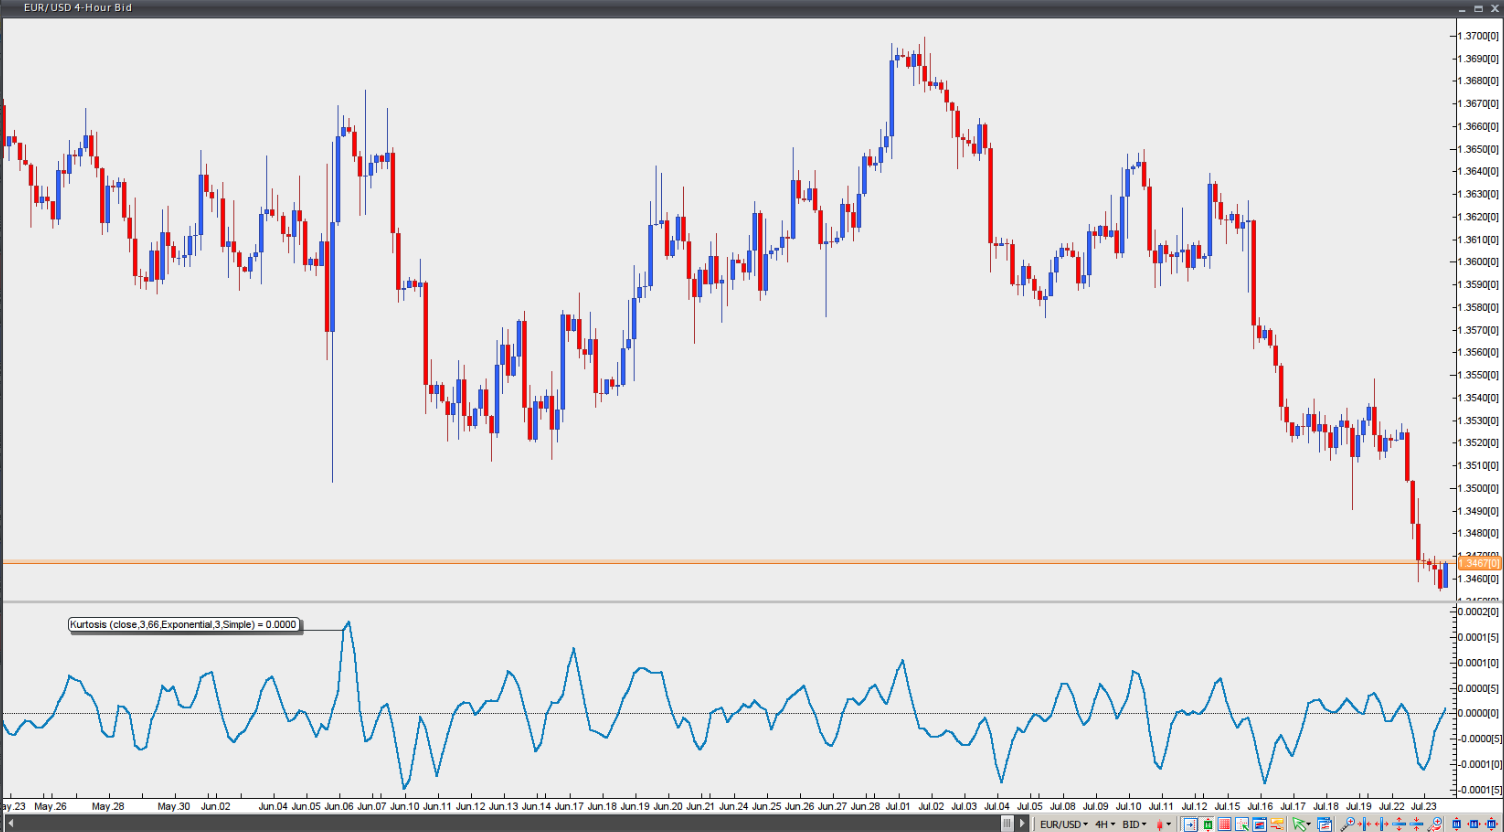 Forex Strategy Corner: FX Options Risk Reversals Trading - DailyFX